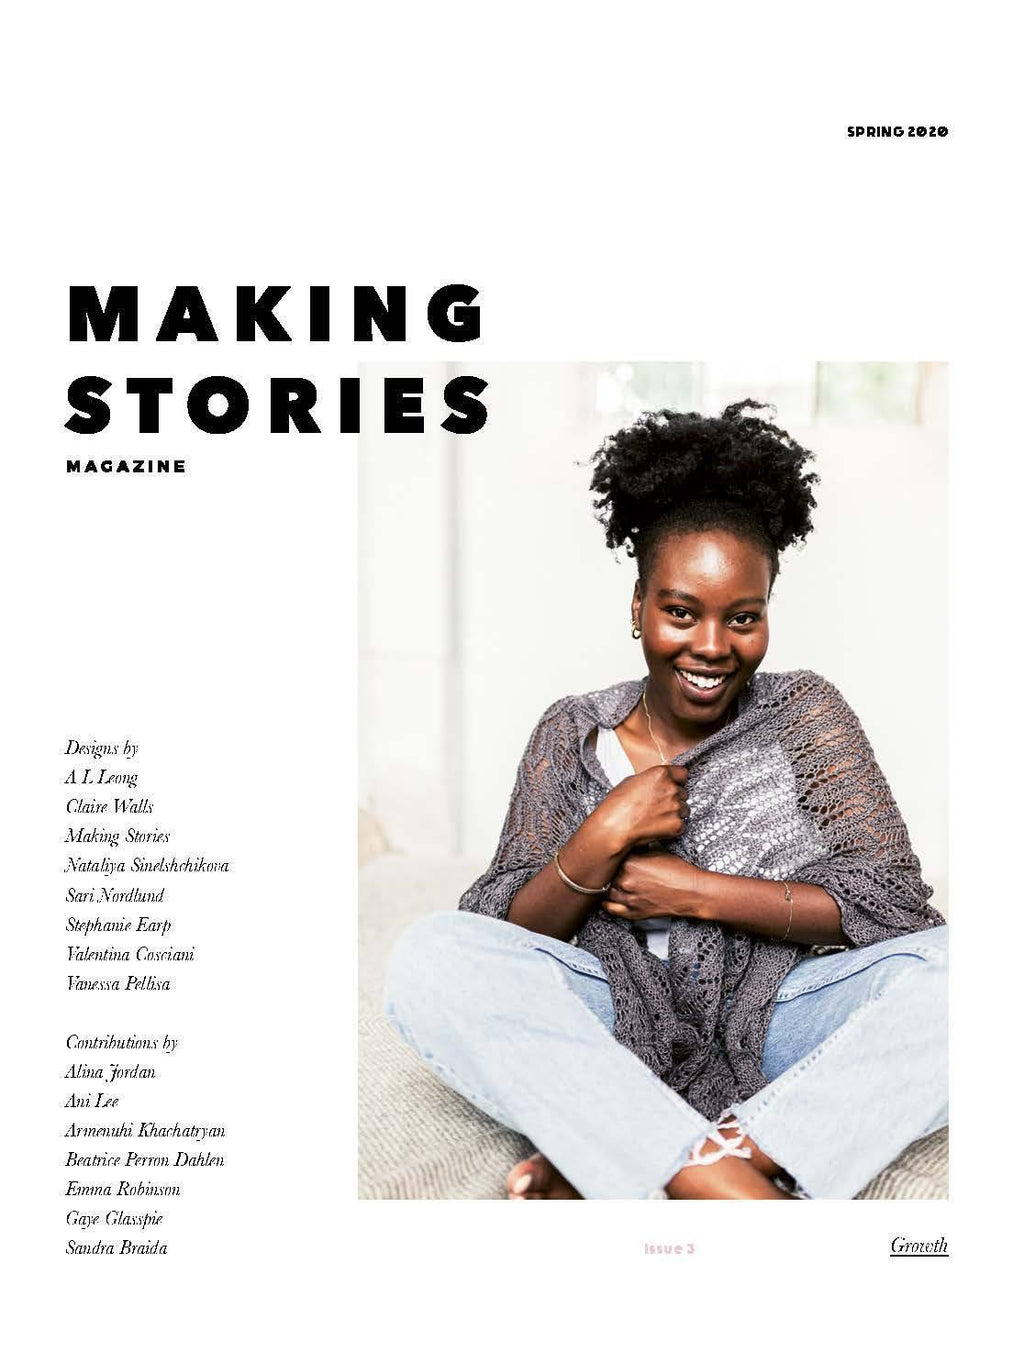 Cover shot of making stories issue three. Woman sitting wearing a grey lace shawl